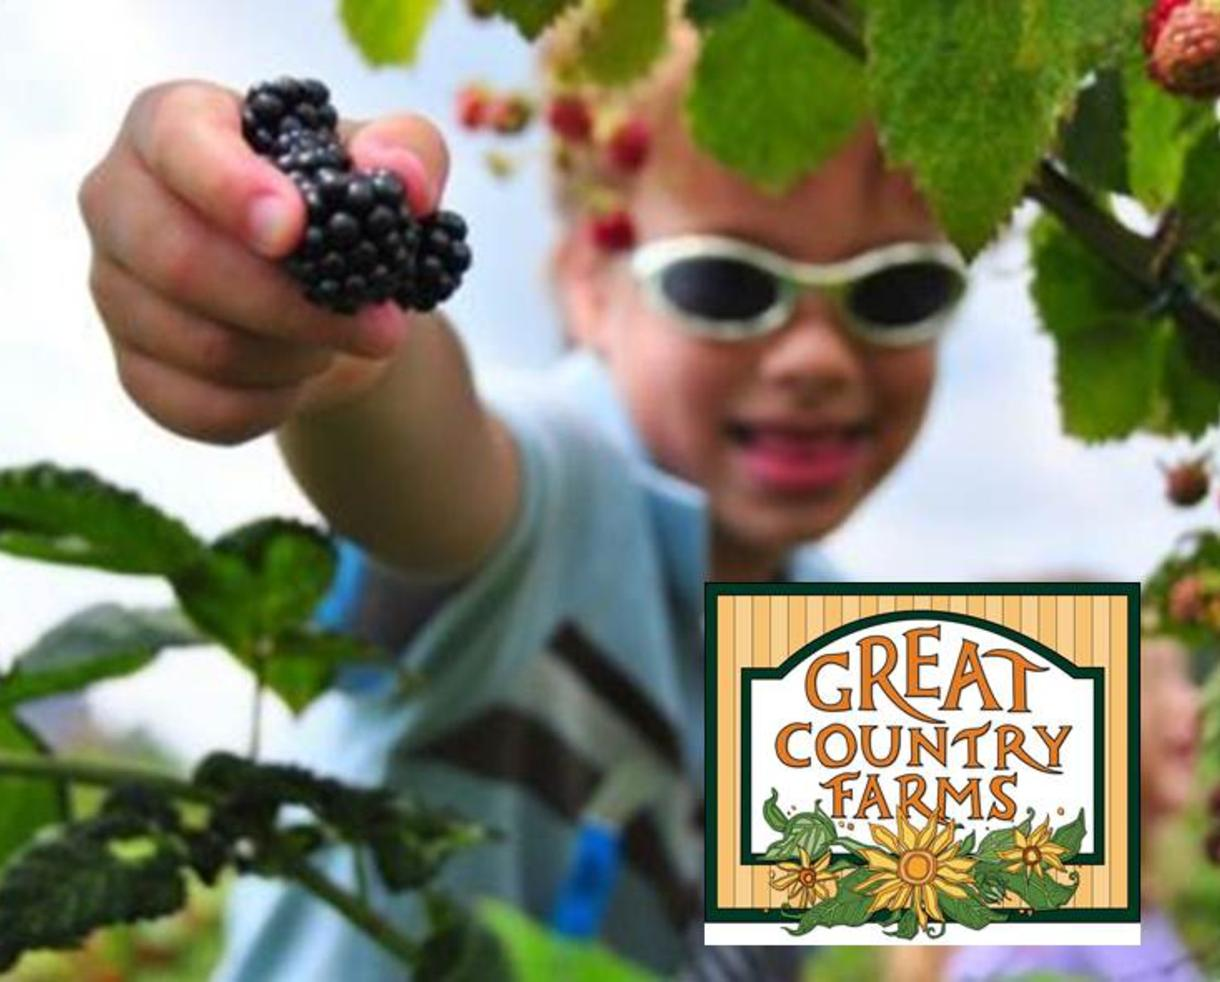 $5 for Great Country Farms Admission - BLACKBERRY PICKING !! (60% Off)